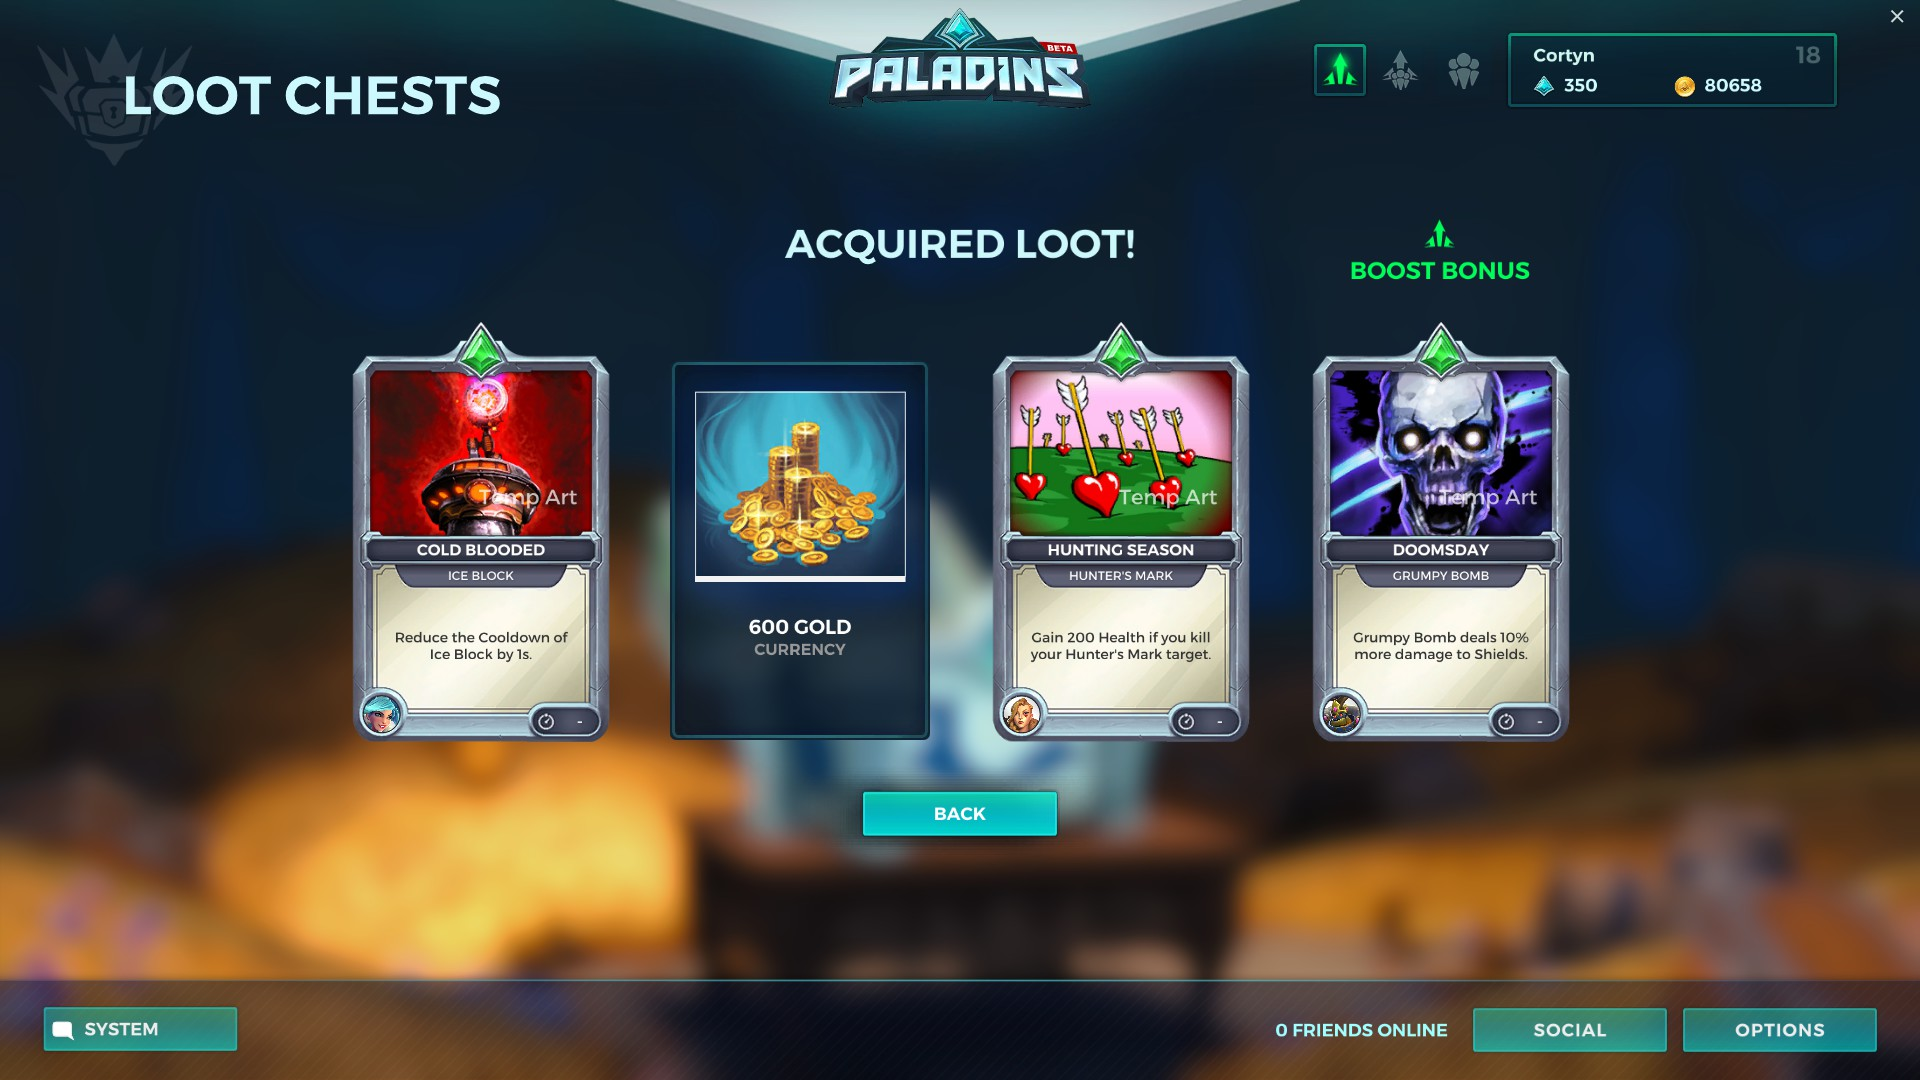 Paladins Lootchest Content